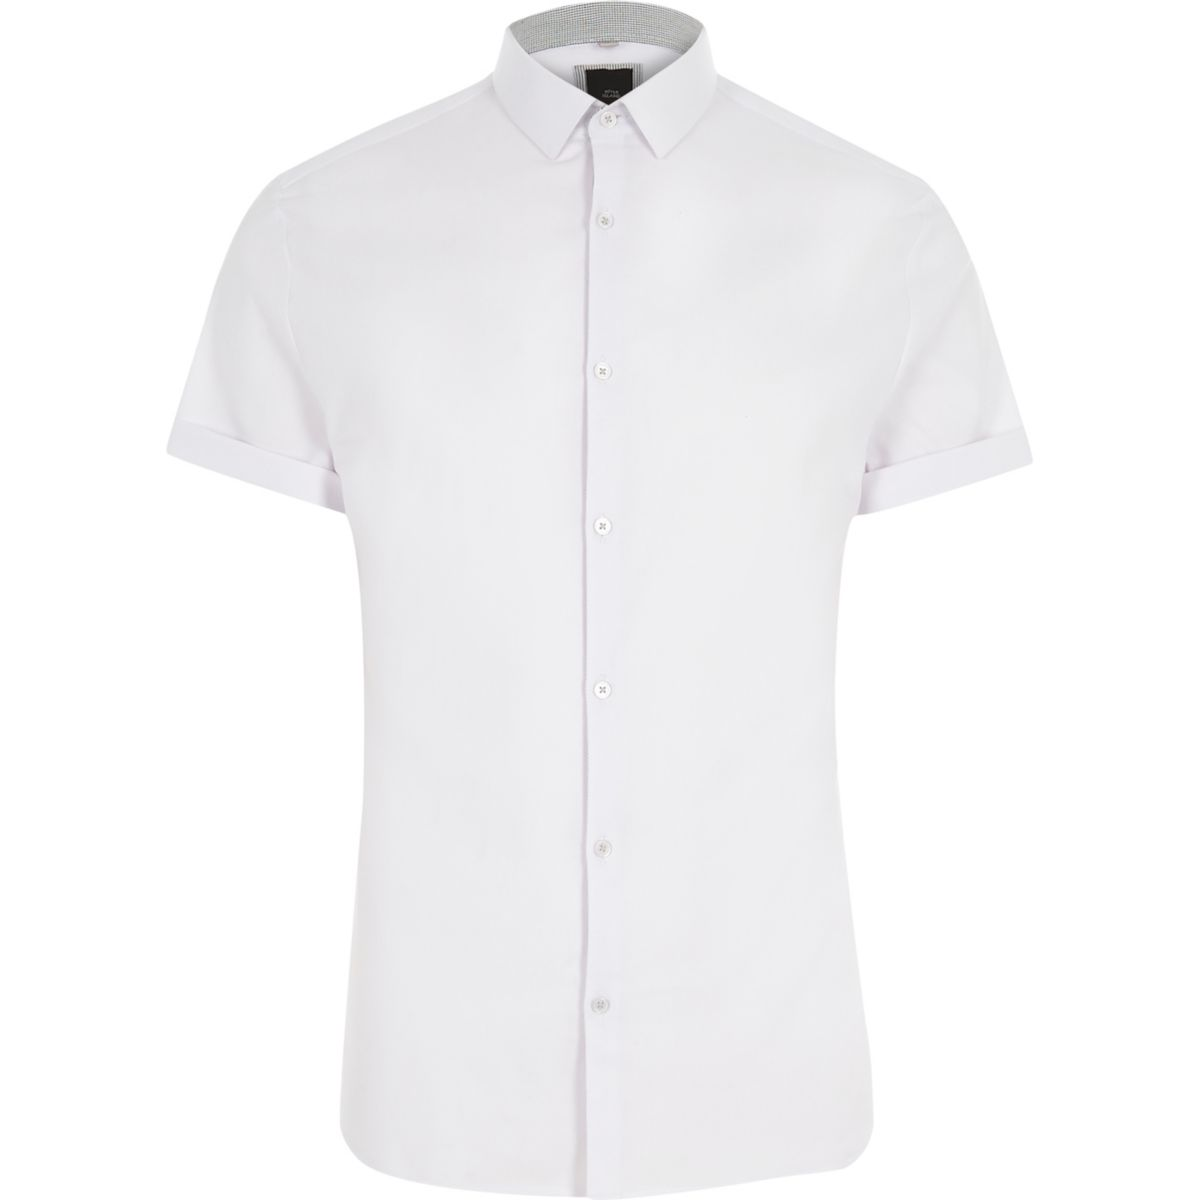 White smart muscle fit short sleeve shirt